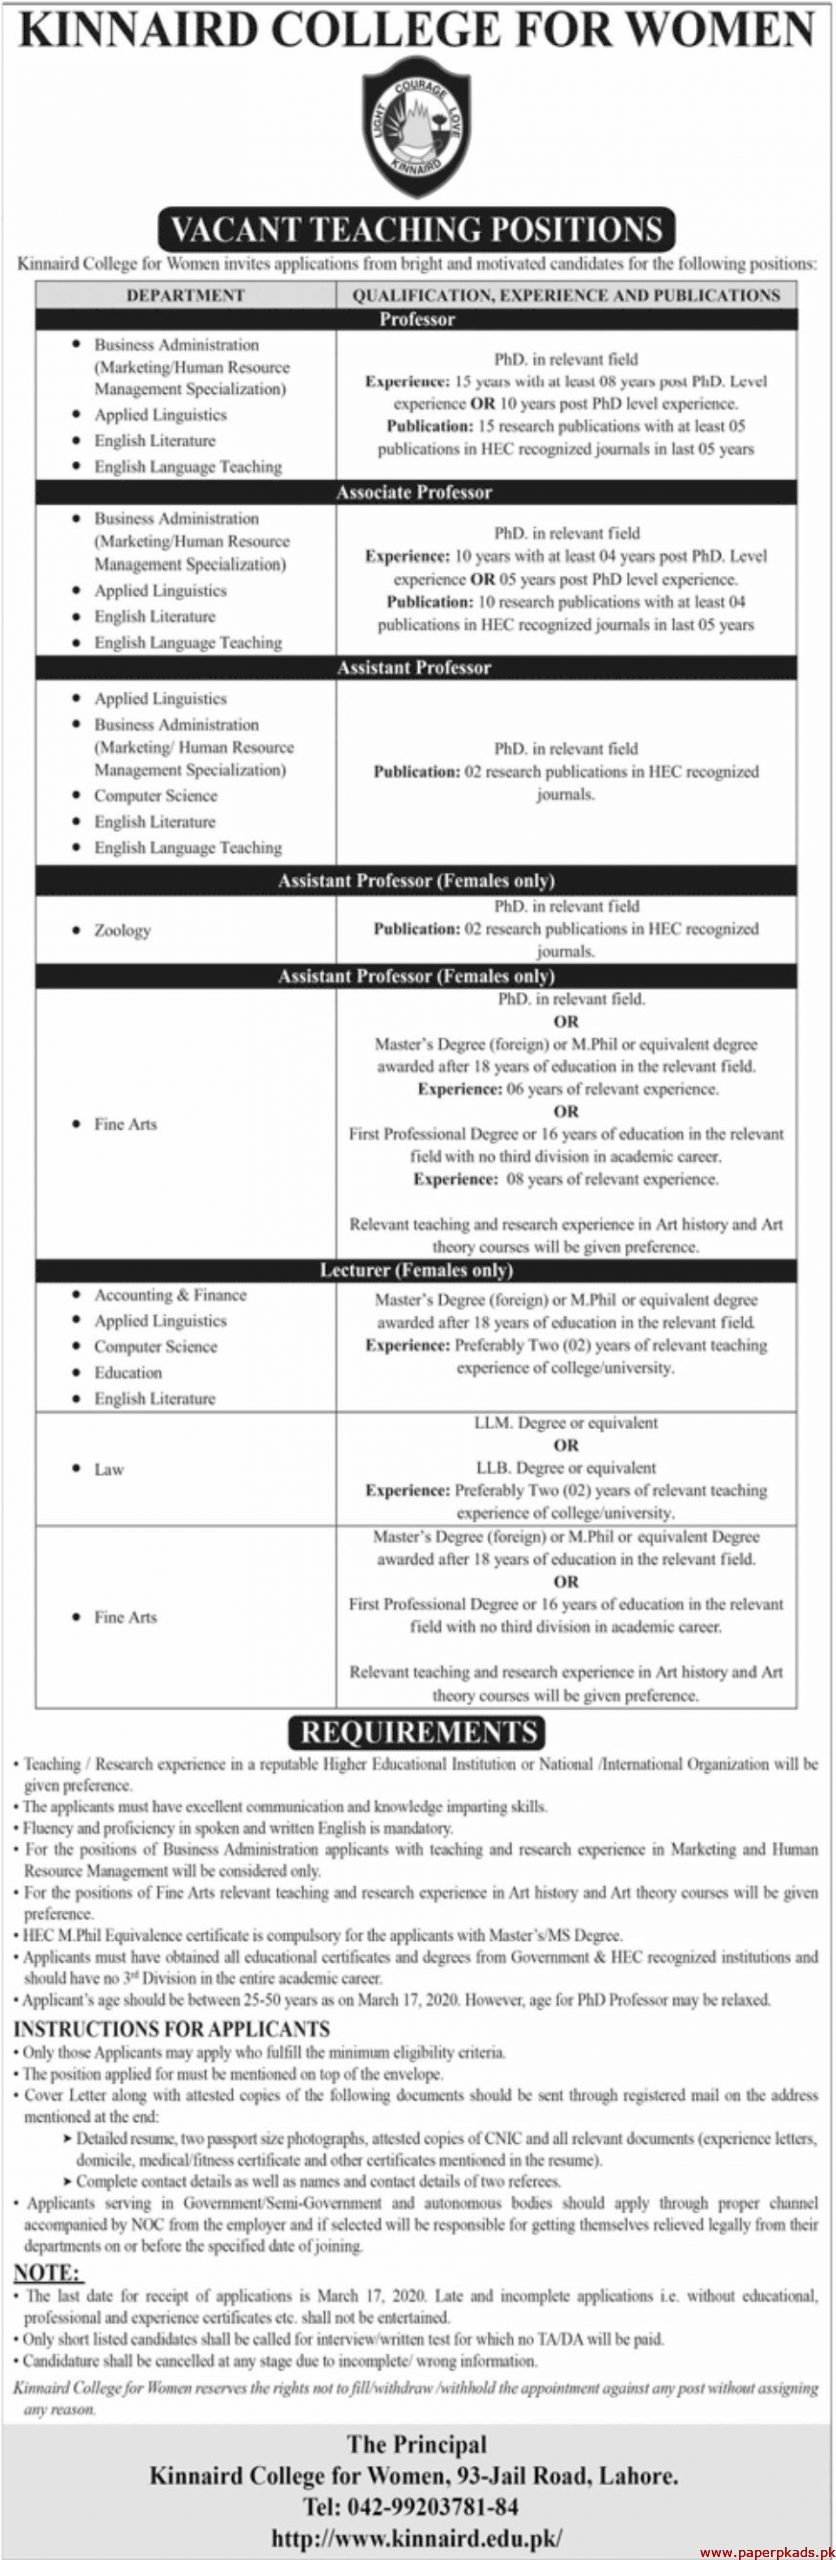 Kinnaird College for Women Jobs 2020 Latest